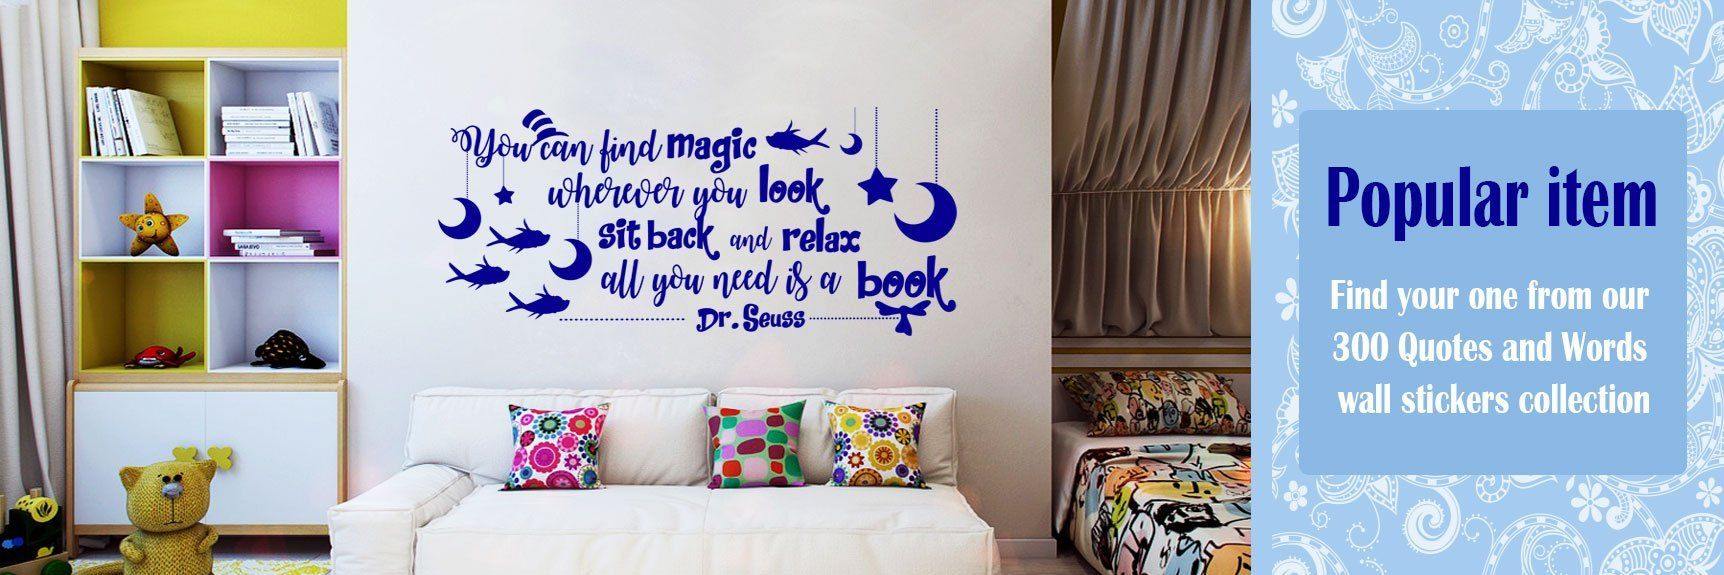 Quotes and word wall art stickers